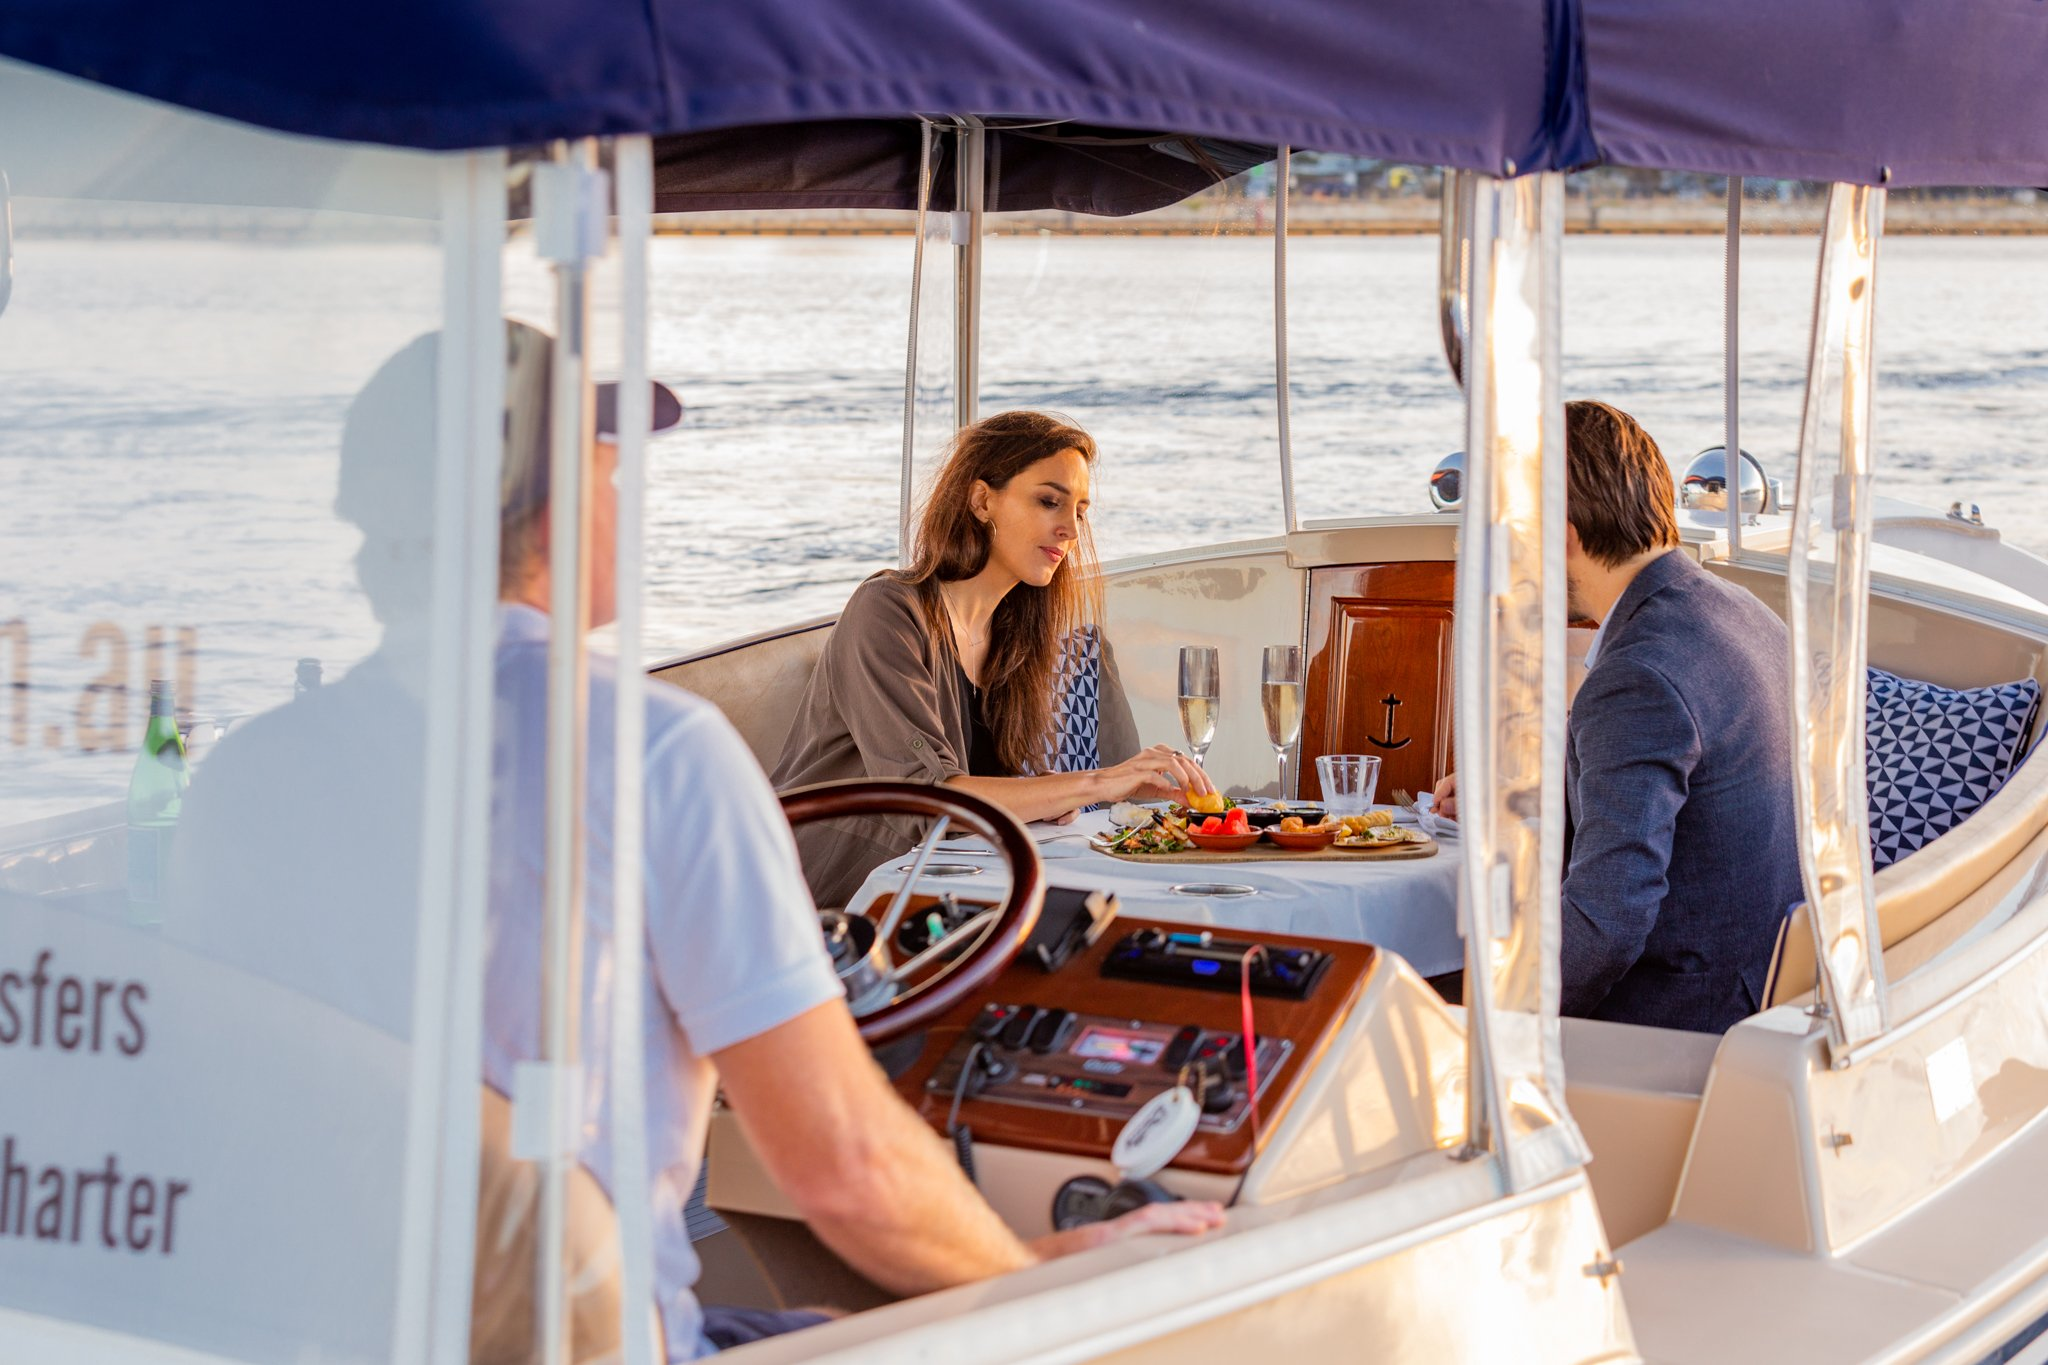 private dinner cruise for two people, yarra river melbourne